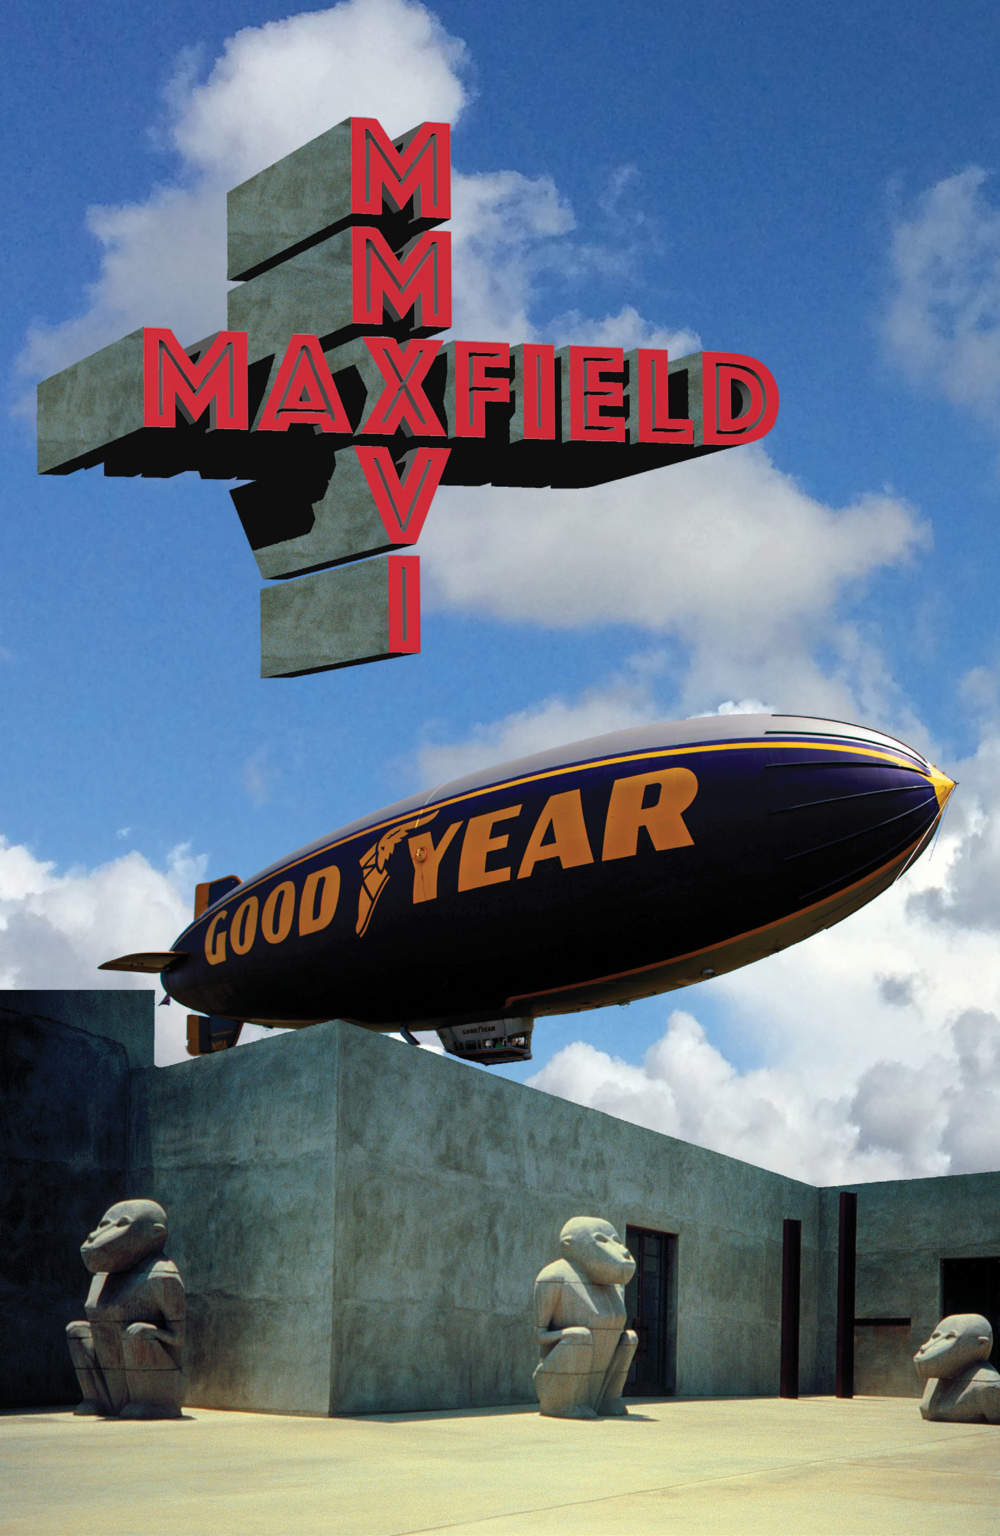 Maxfieldholiday2015.png